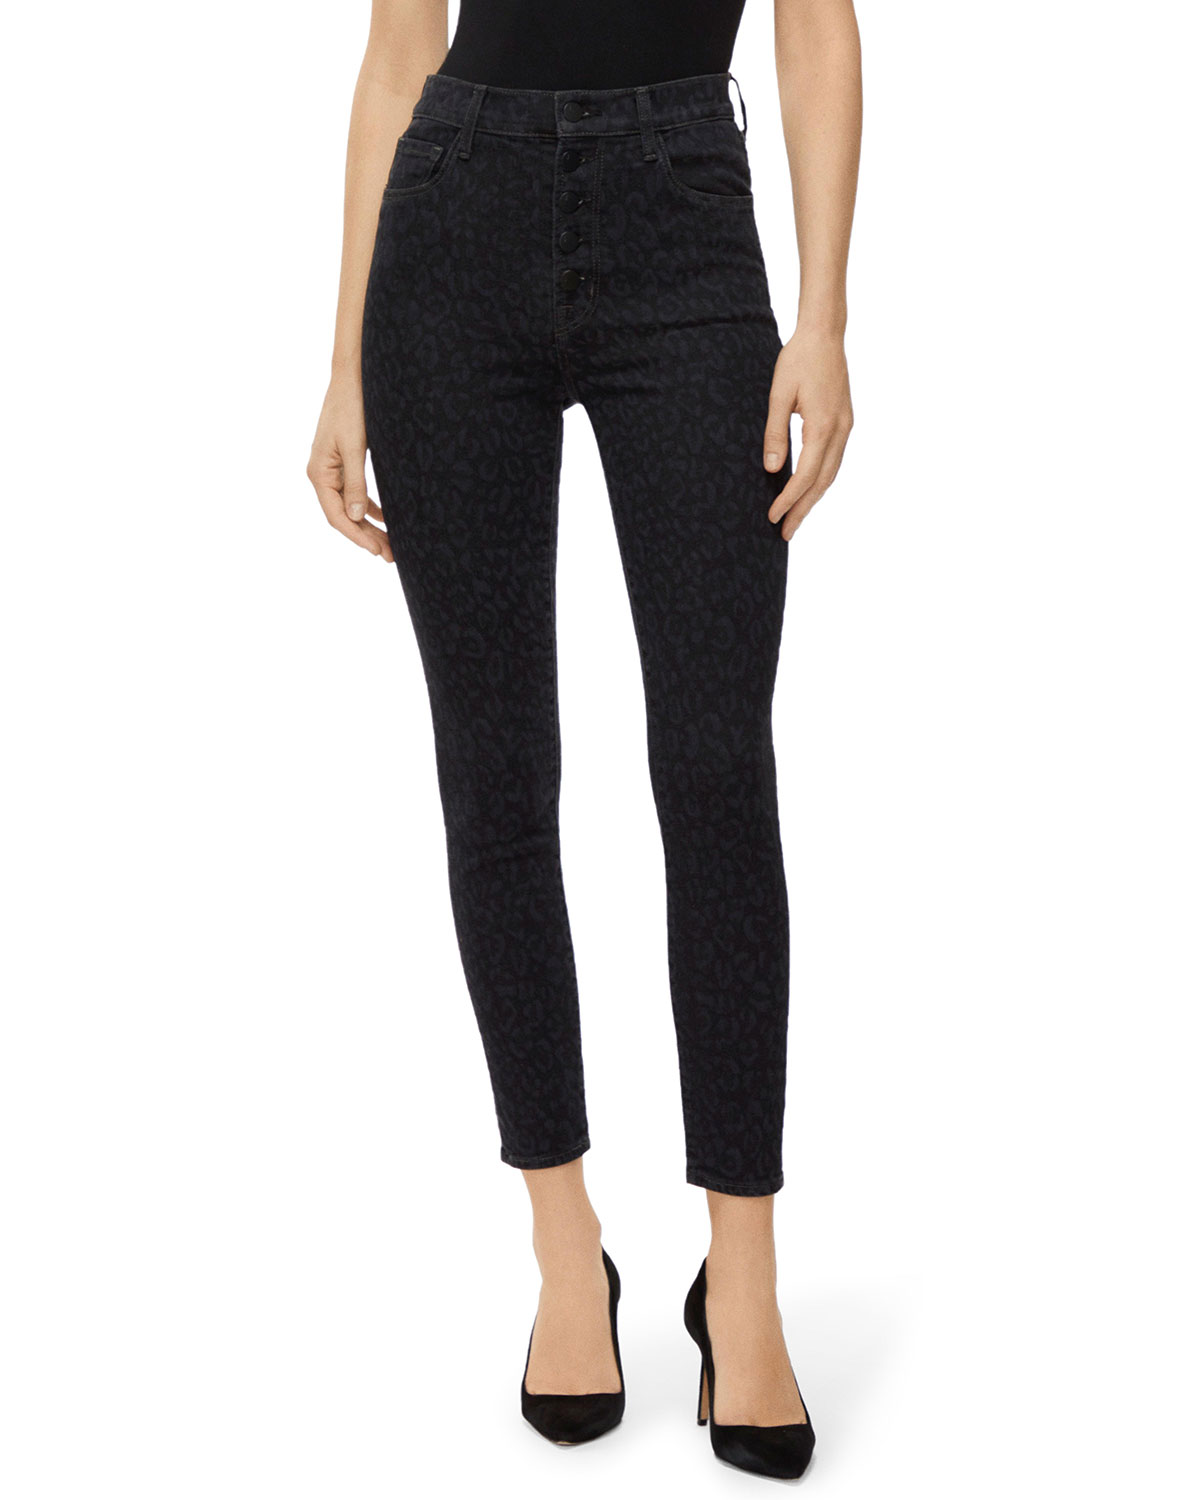 J Brand Jeans LILLIE LEOPARD-PRINT HIGH-RISE CROPPED SKINNY JEANS